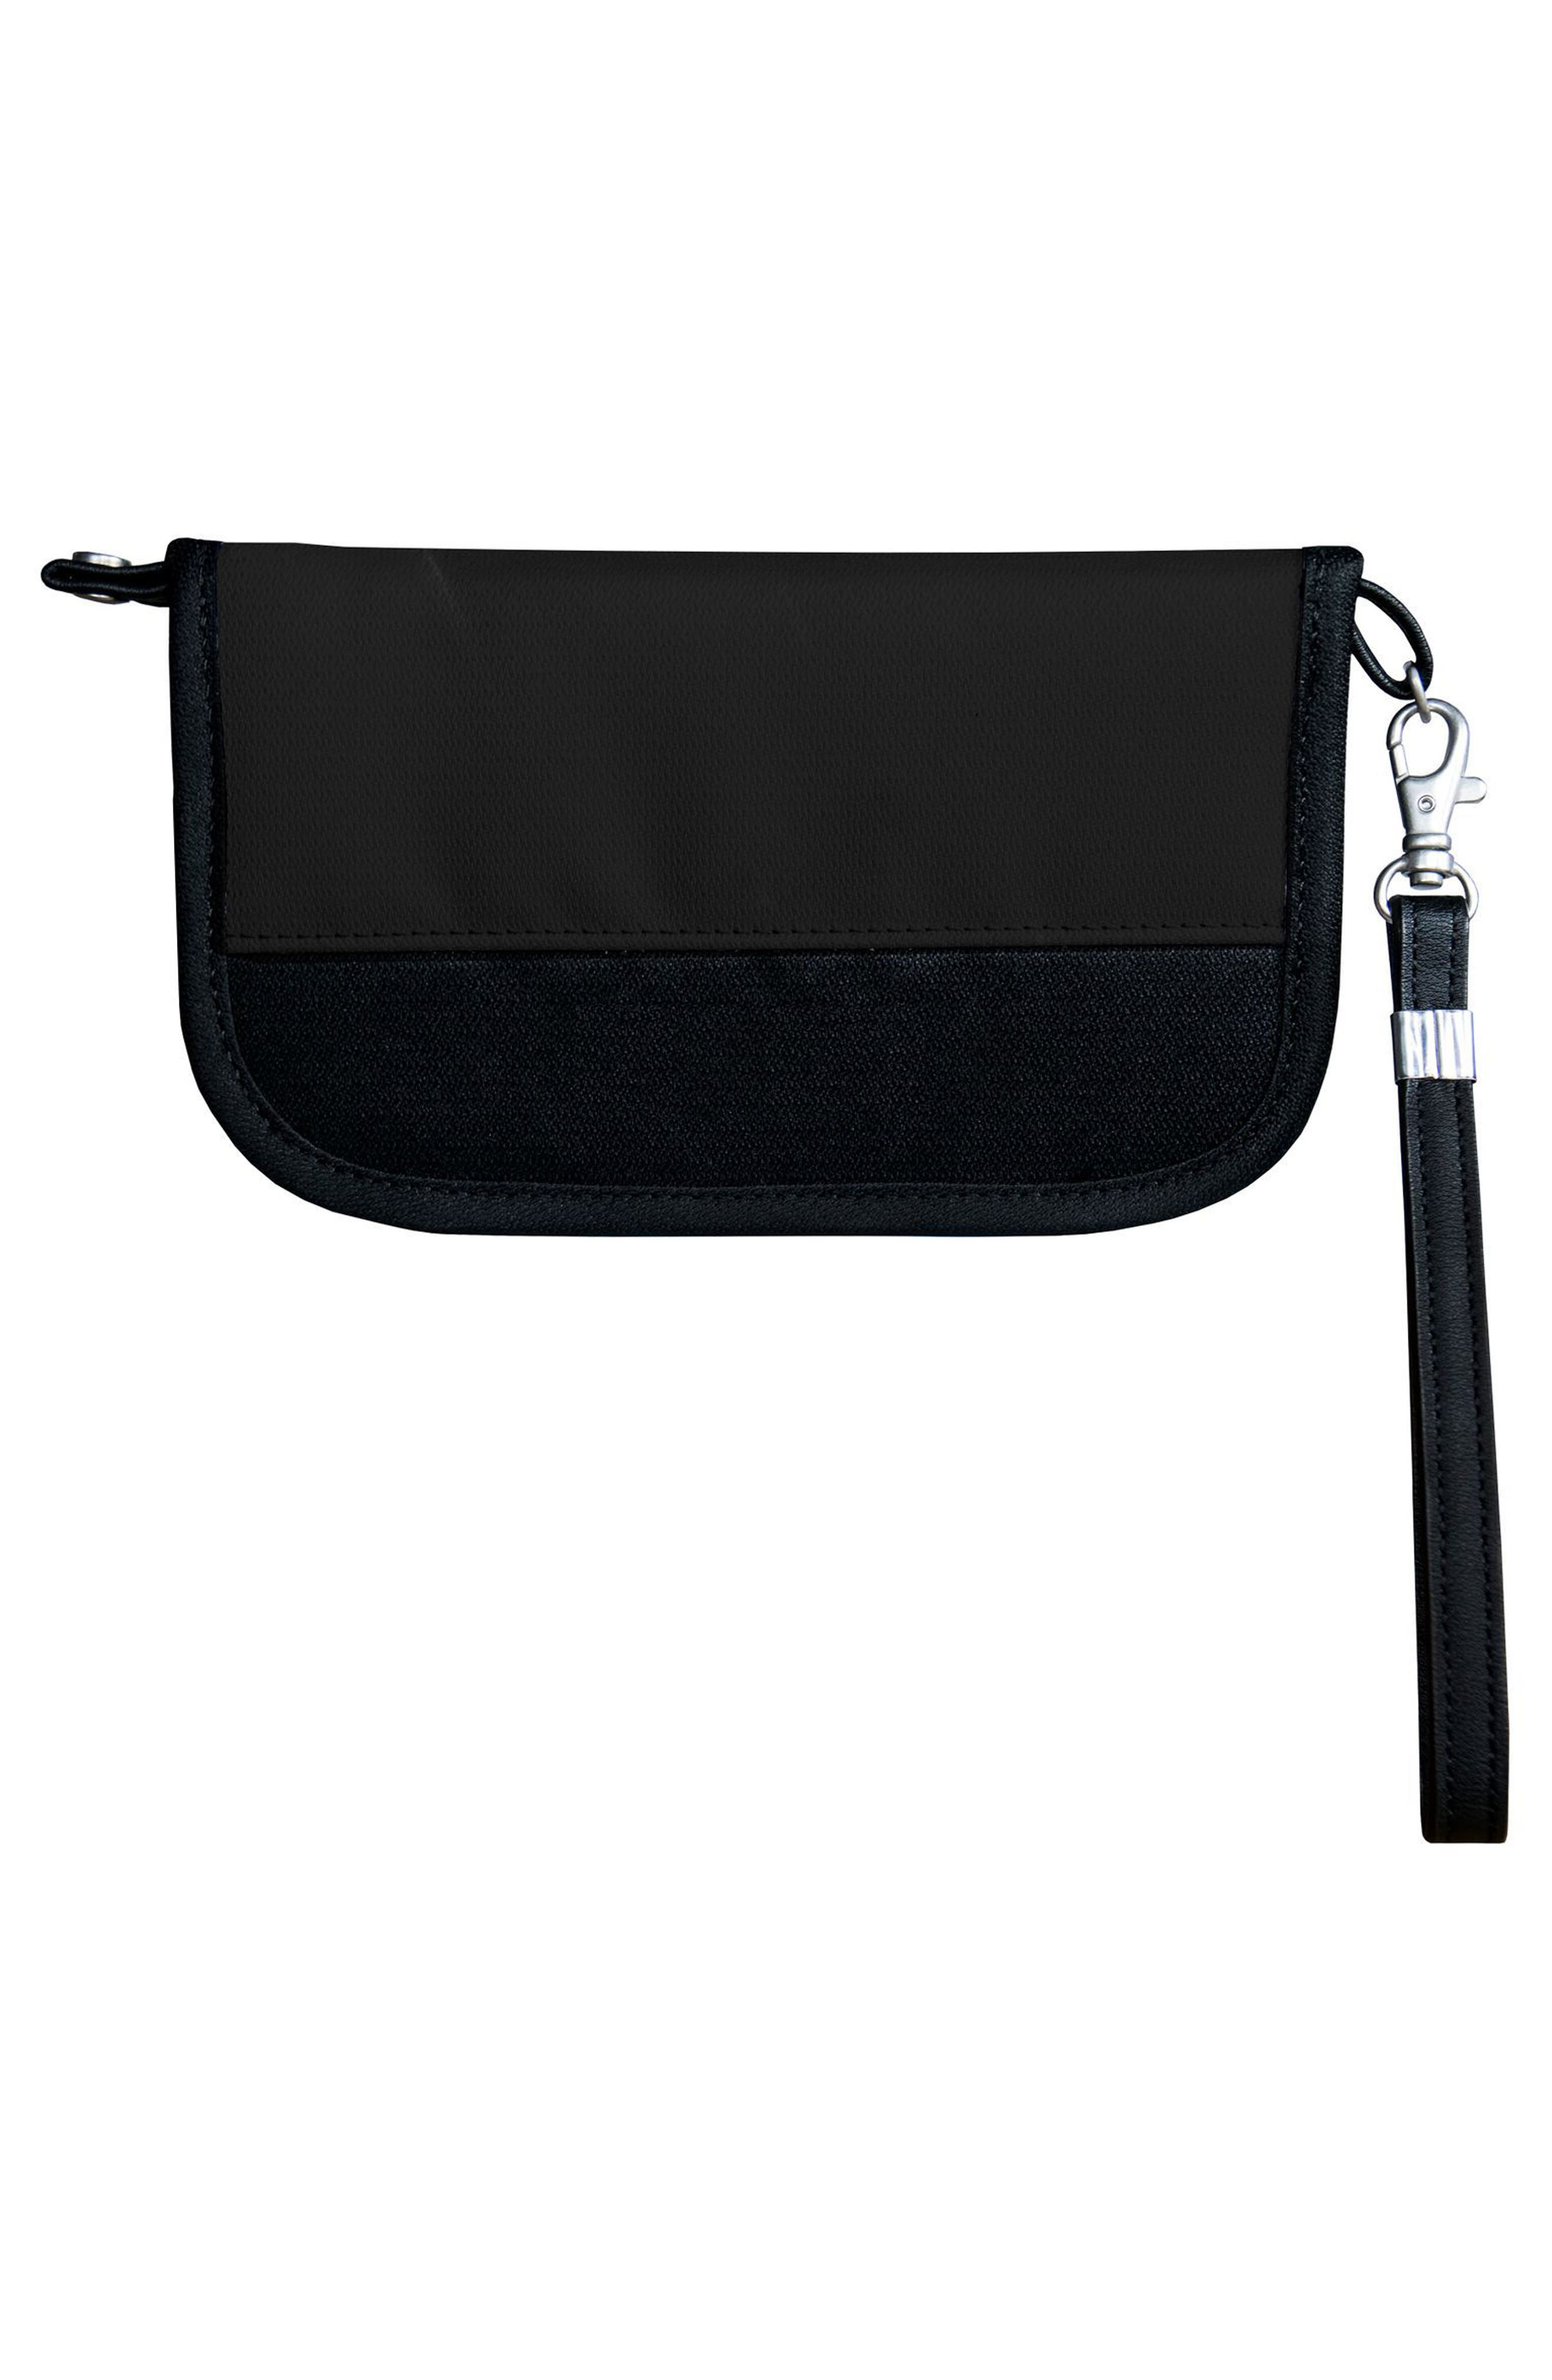 Lucky RFID Wristlet Wallet,                             Alternate thumbnail 3, color,                             001